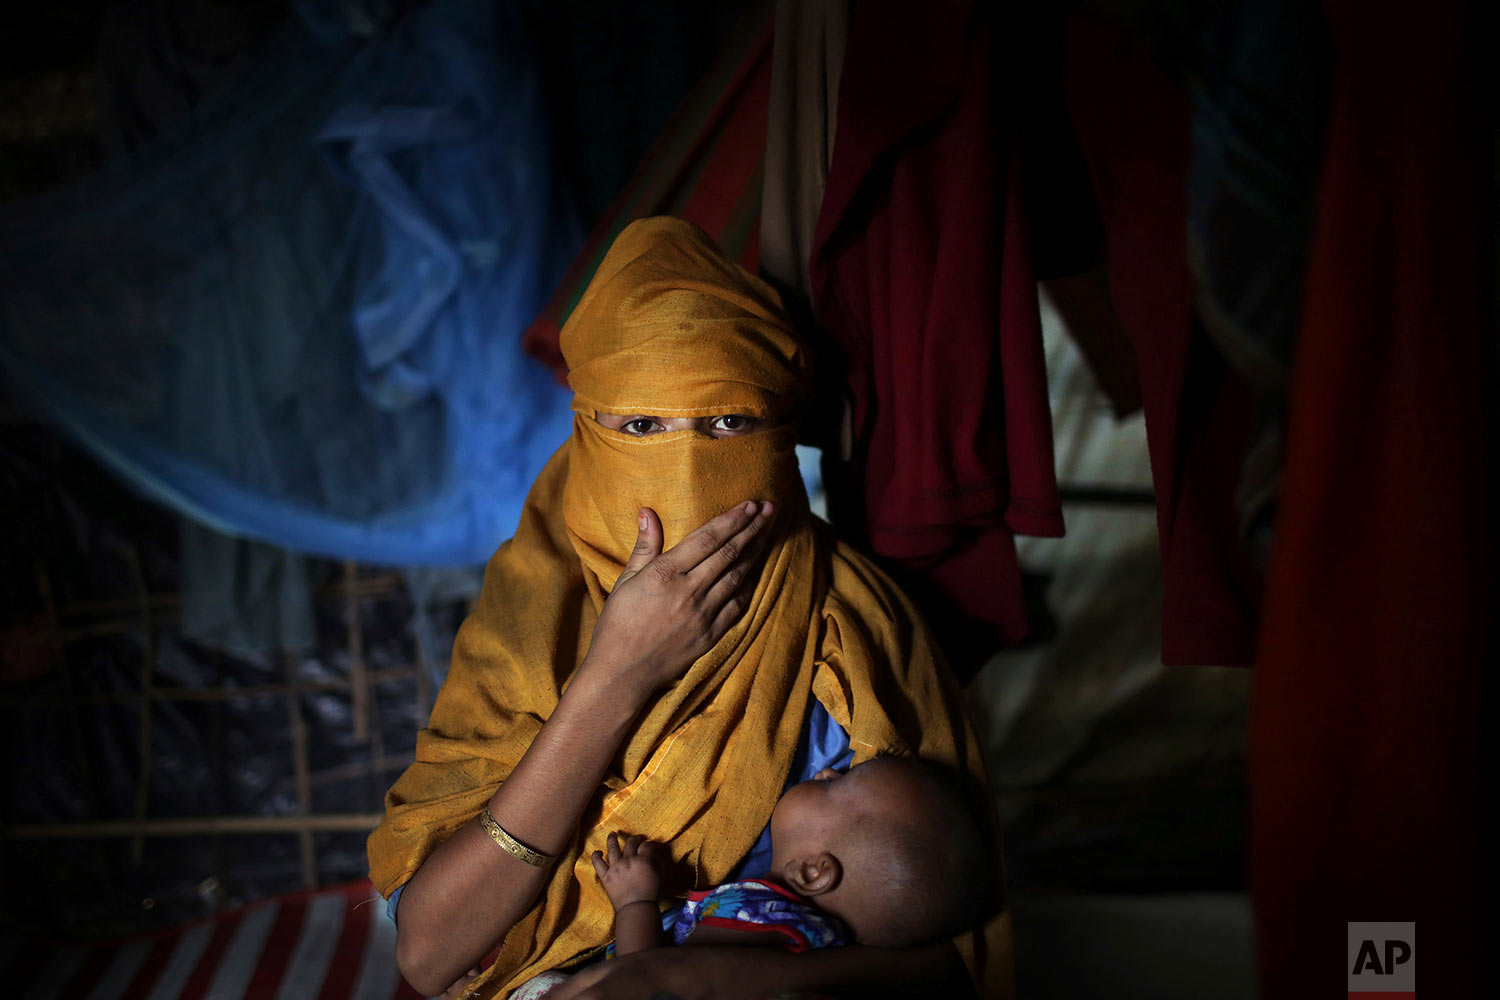 In this Wednesday, Nov. 22, 2017, photo, S, 16, mother of baby boy, who says she was raped by members of Myanmar's armed forces in early August carries her baby while being photographed in her tent in Kutupalong refugee camp in Bangladesh.  (AP Photo/Wong Maye-E)